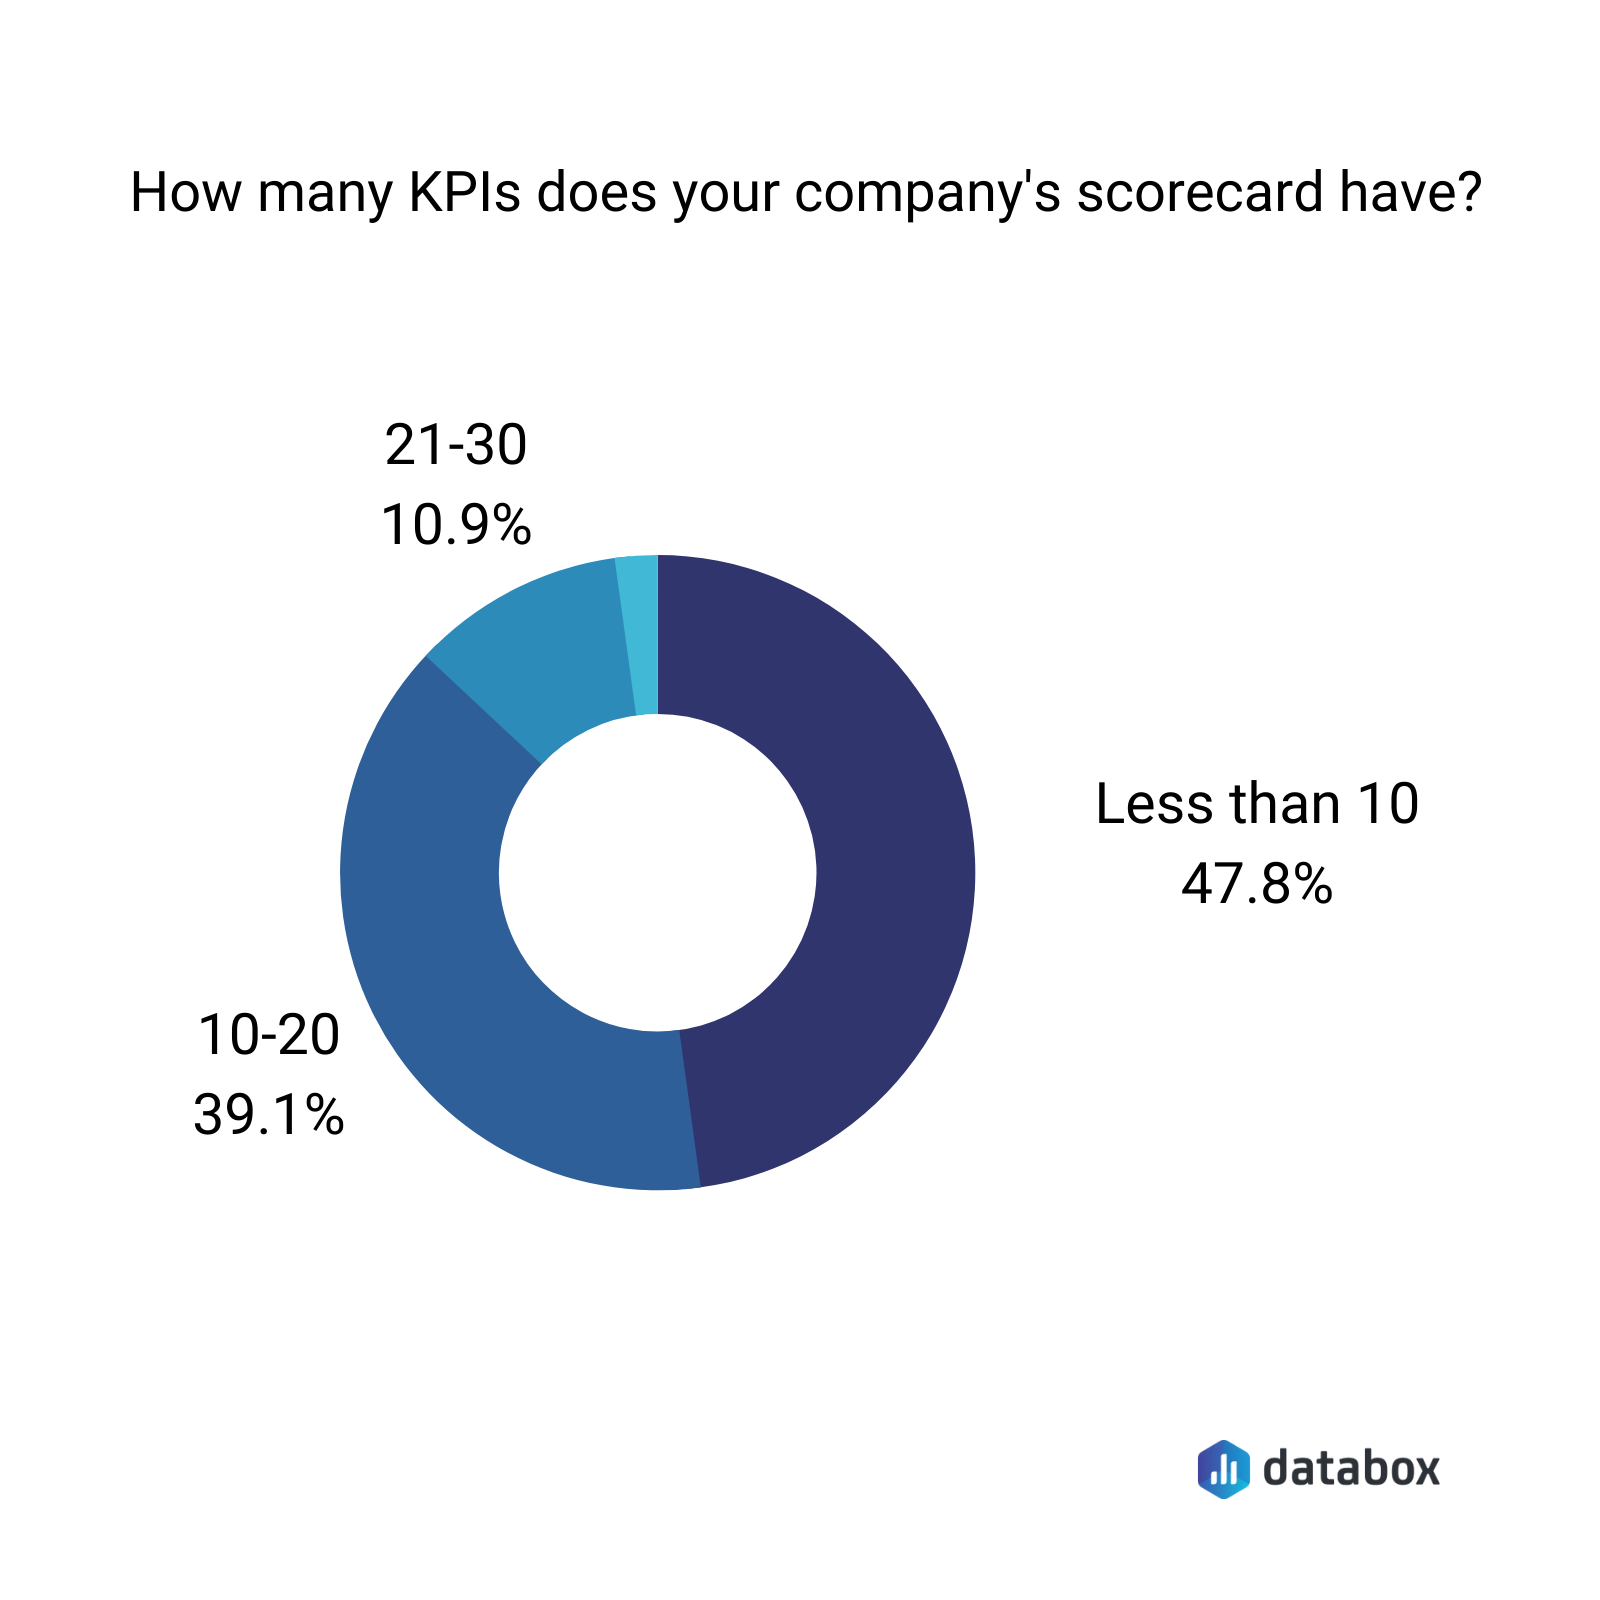 How many KPIs does your company's scorecard have?